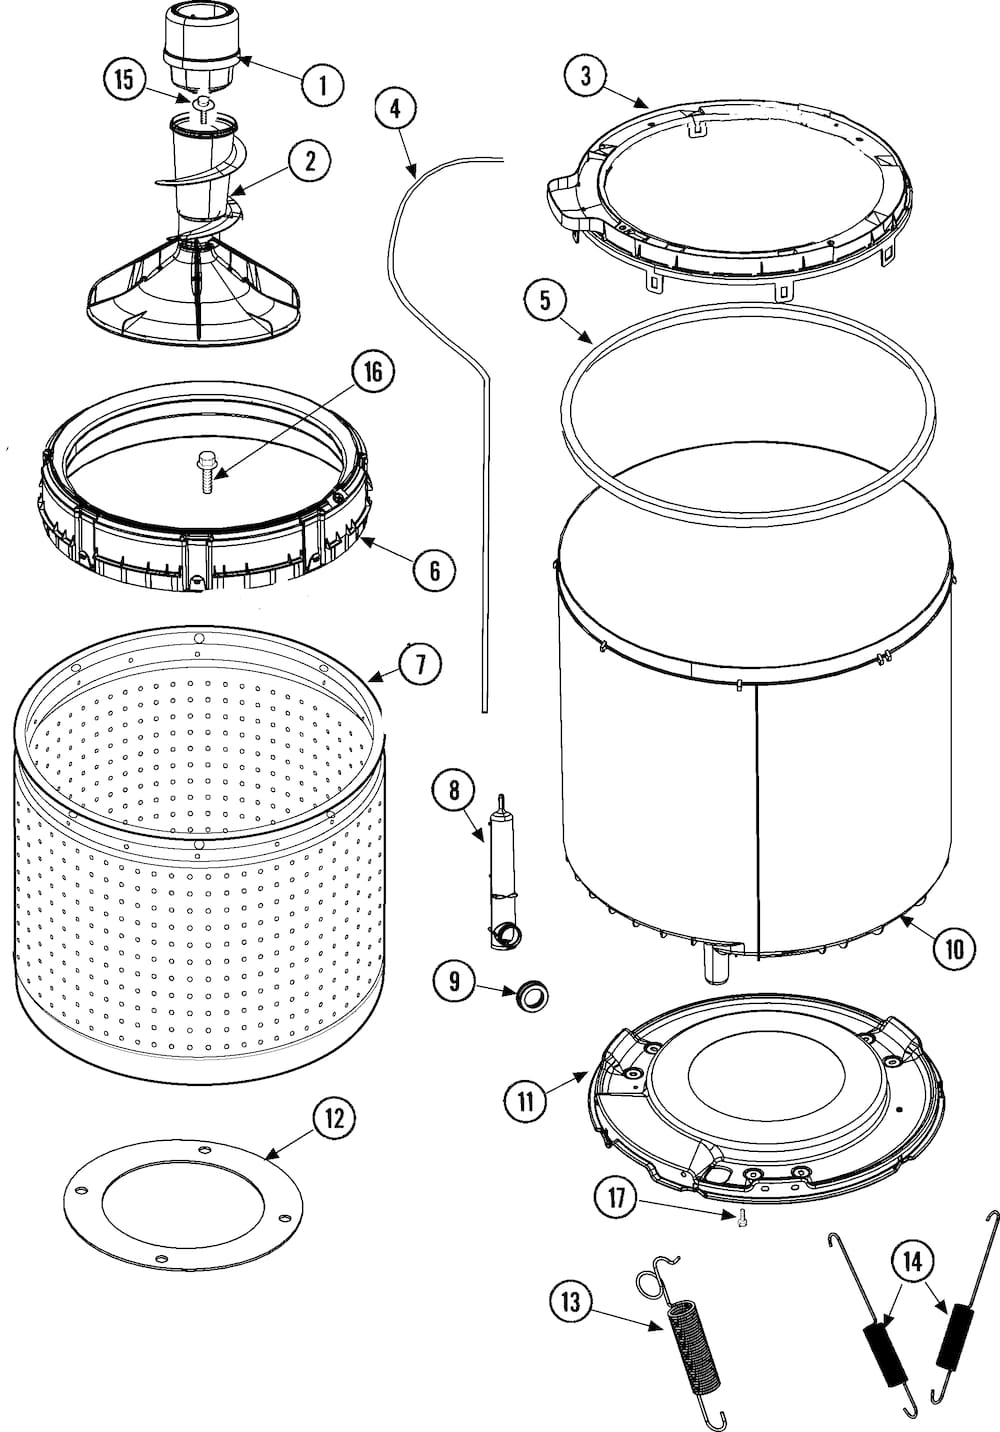 wiring diagram for maytag neptune washer